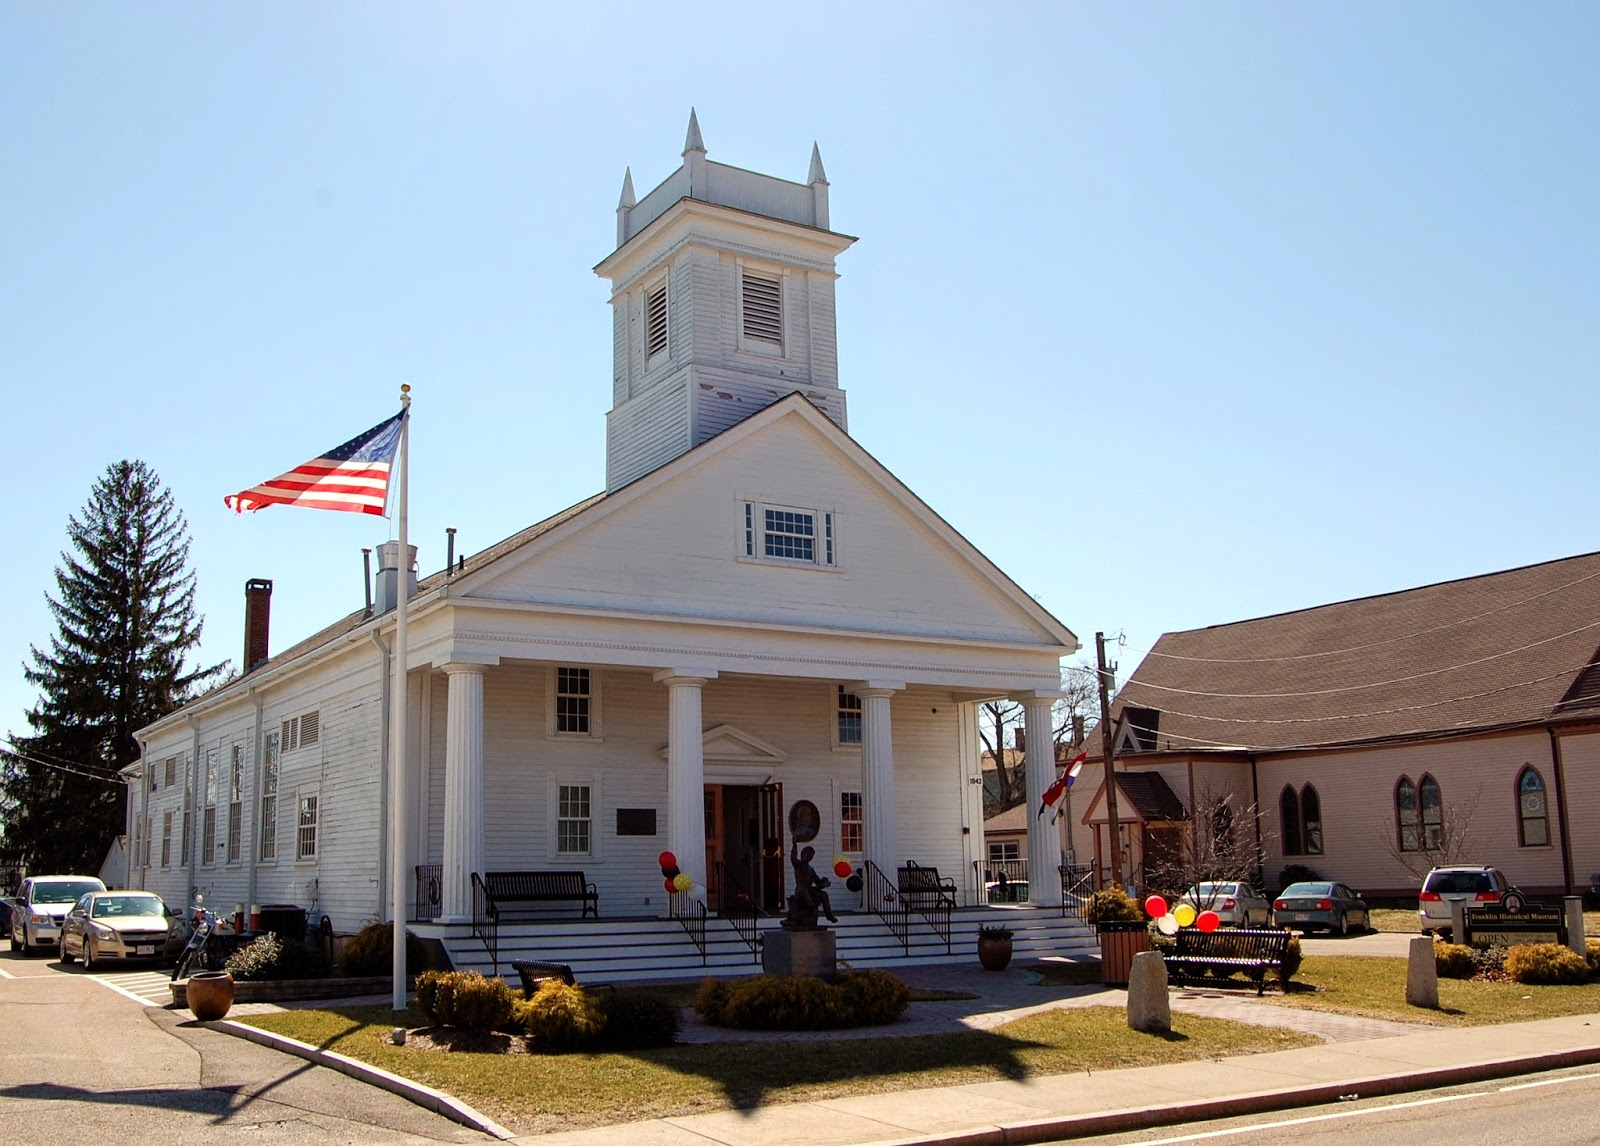 Franklin Historical Museum